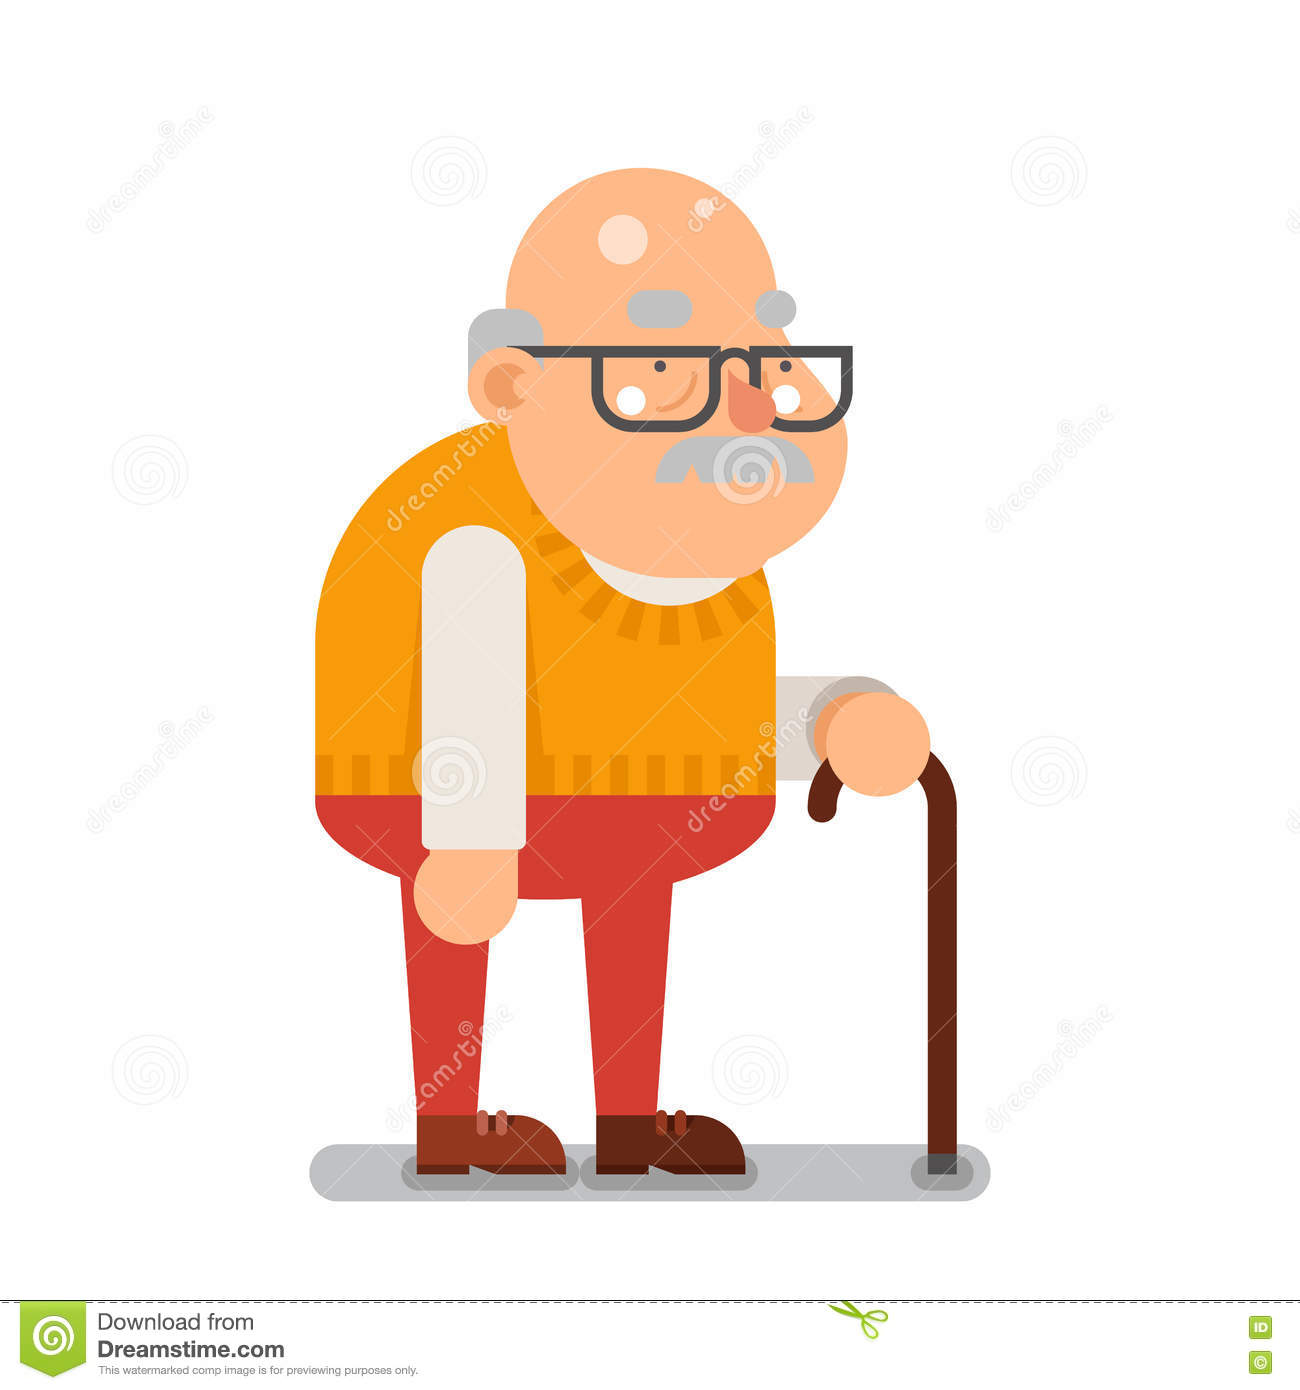 Cartoon Characters Old Man : Grandfather old man character cartoon flat design vector